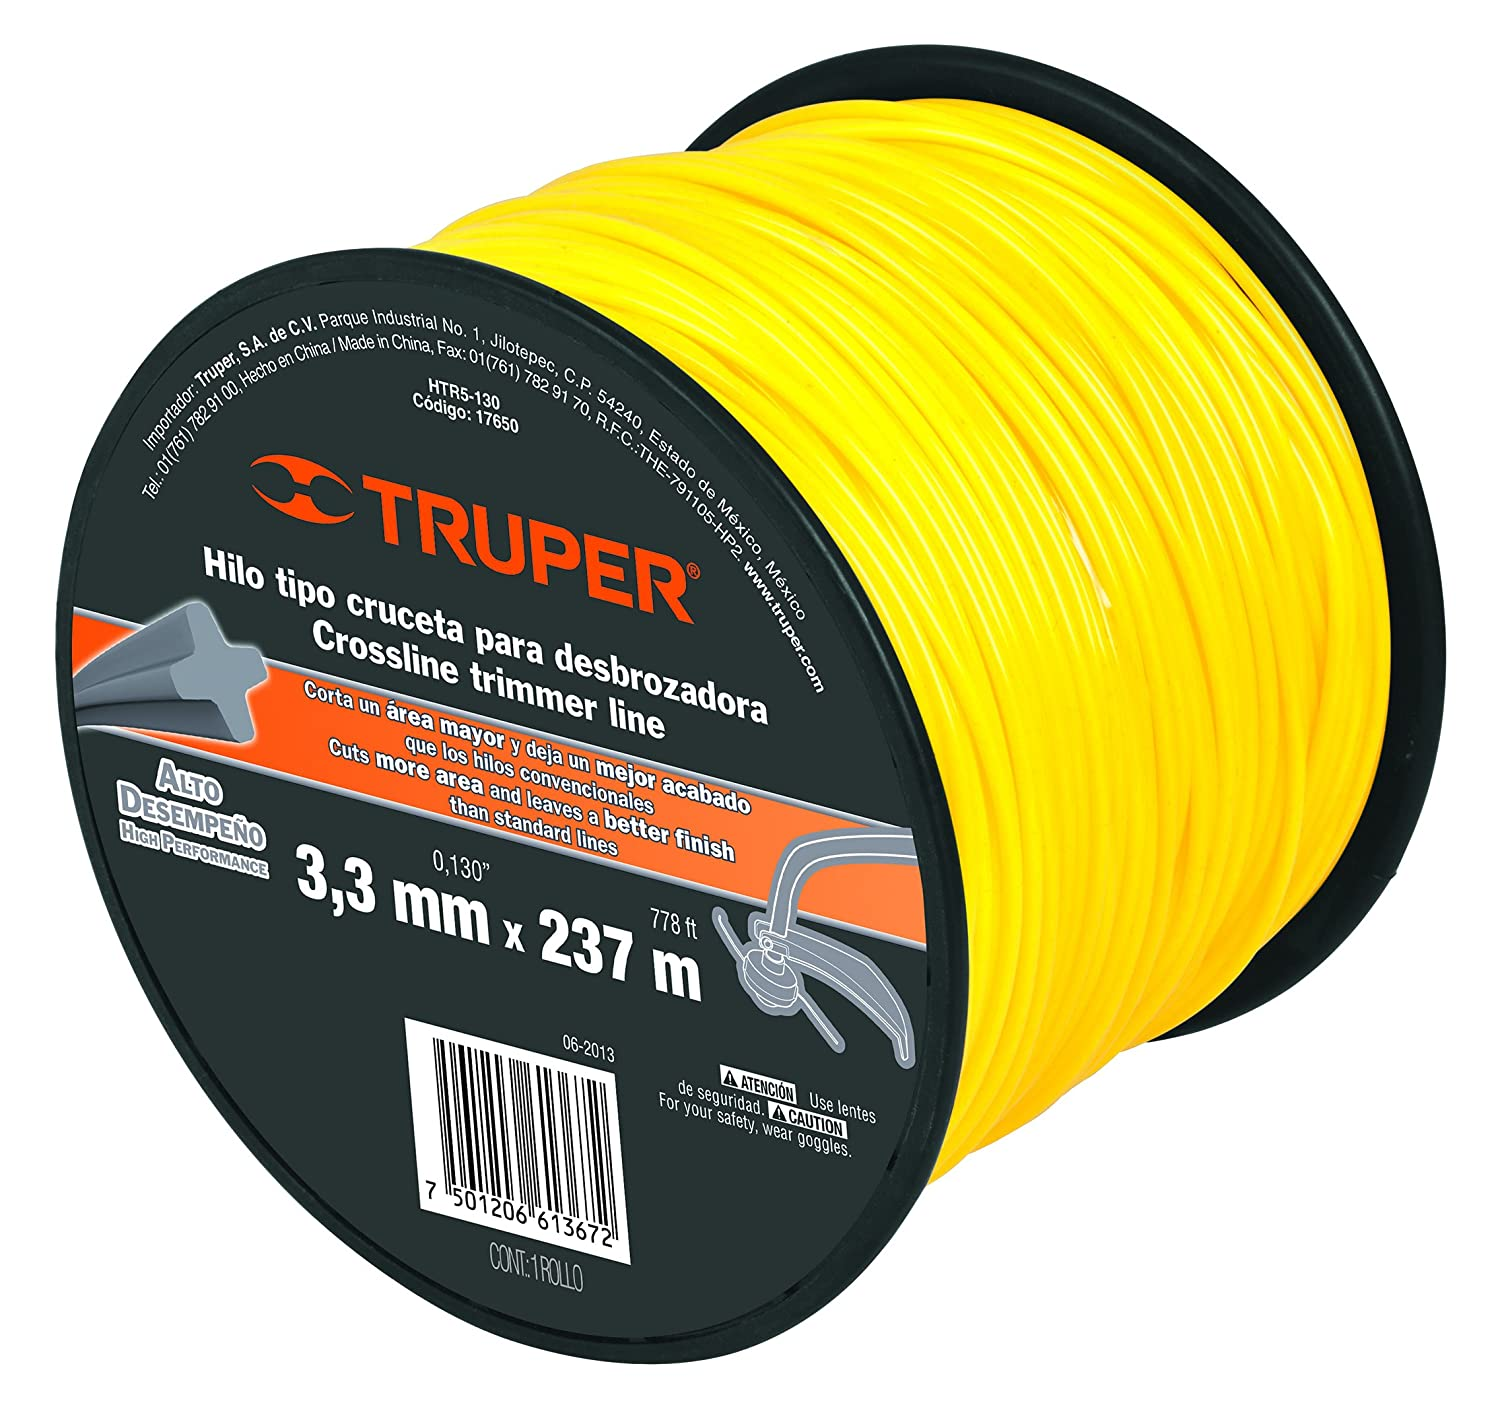 TRUPER HTR5-130 Cross Section String Trimmers Lines 1/8 ...